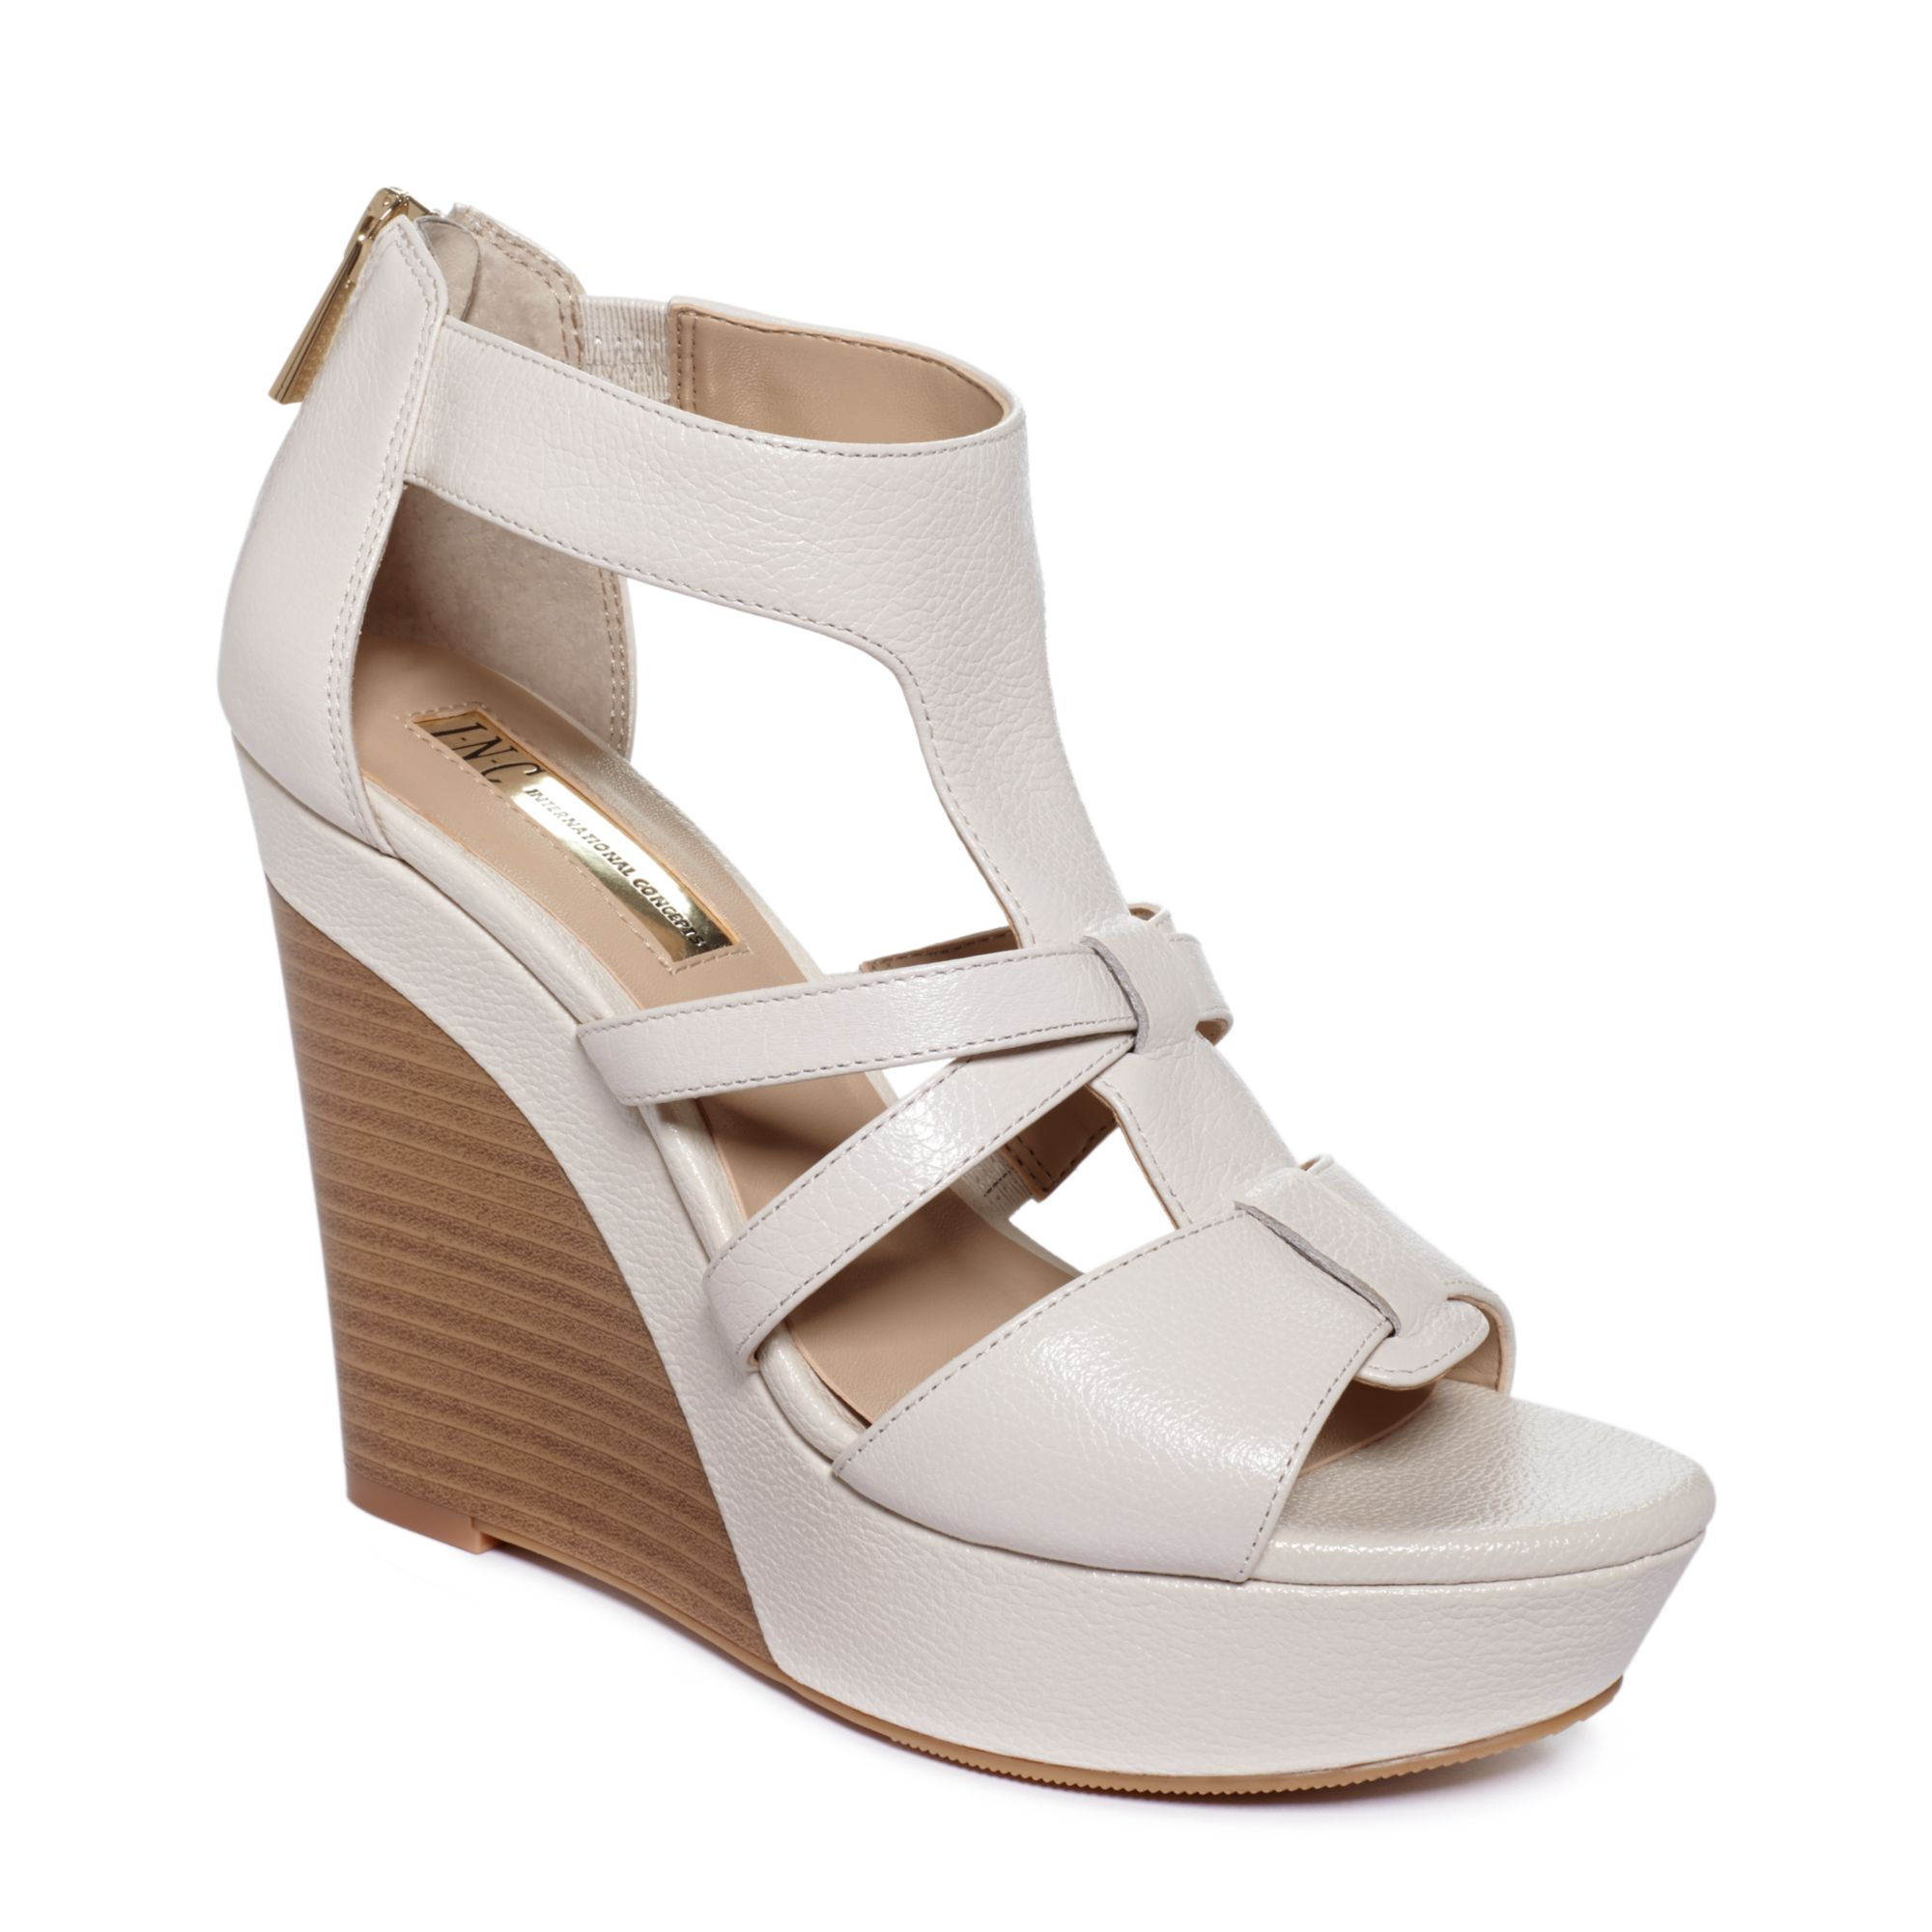 Cool Step Out In Standout Style With An Ankle Strap Mixed With Cutouts And A Sleek Wedge Heel On Alfanis Pella Wedge Sandals Alfani Shoes Are Fashion Forward And The Perfect Shoes To Complement Casual And Wear To Work Clothing For